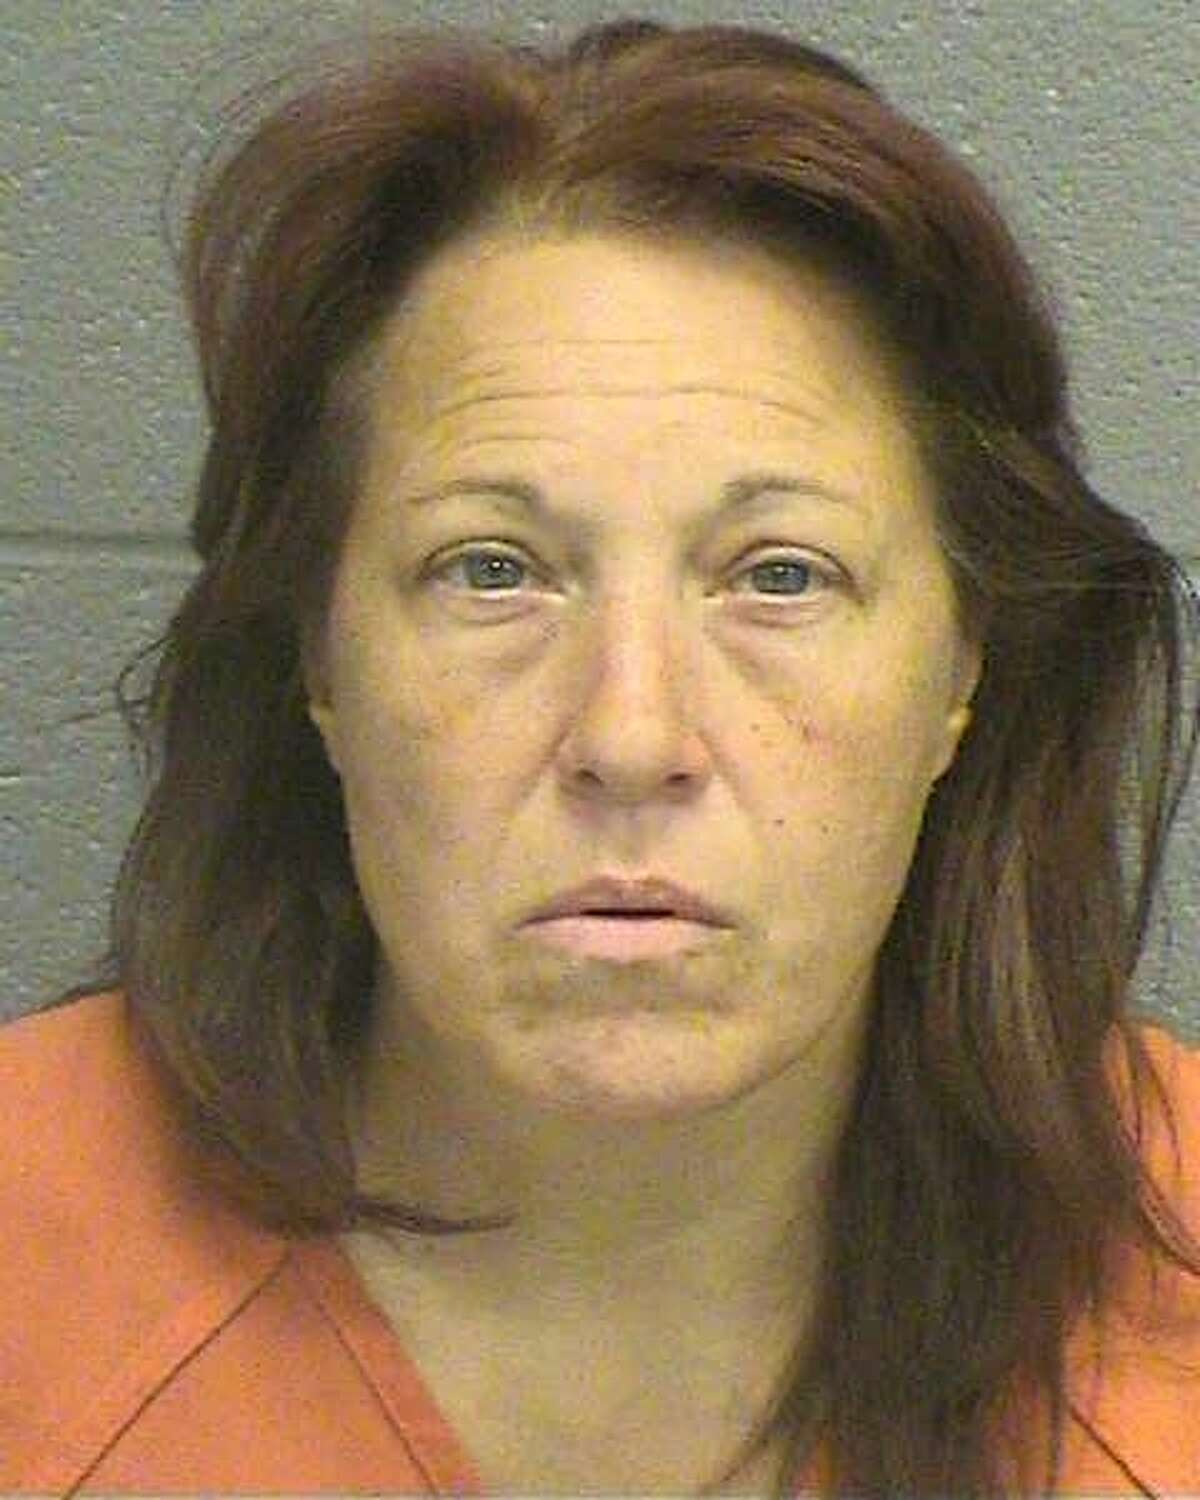 Wanda Christine Black, 46, was arrested after allegedly pointing a rifle at a man.Police were dispatched to the 600 block of Tyler Street after a man reported a woman pointed a firearm at him from her front porch. Black told police that a man came to the residence several times in an attempt to evict her because the house belongs to a family member, according to the arrest affidavit.If convicted of a second-degree felony, Black could face up to 20 years in prison.